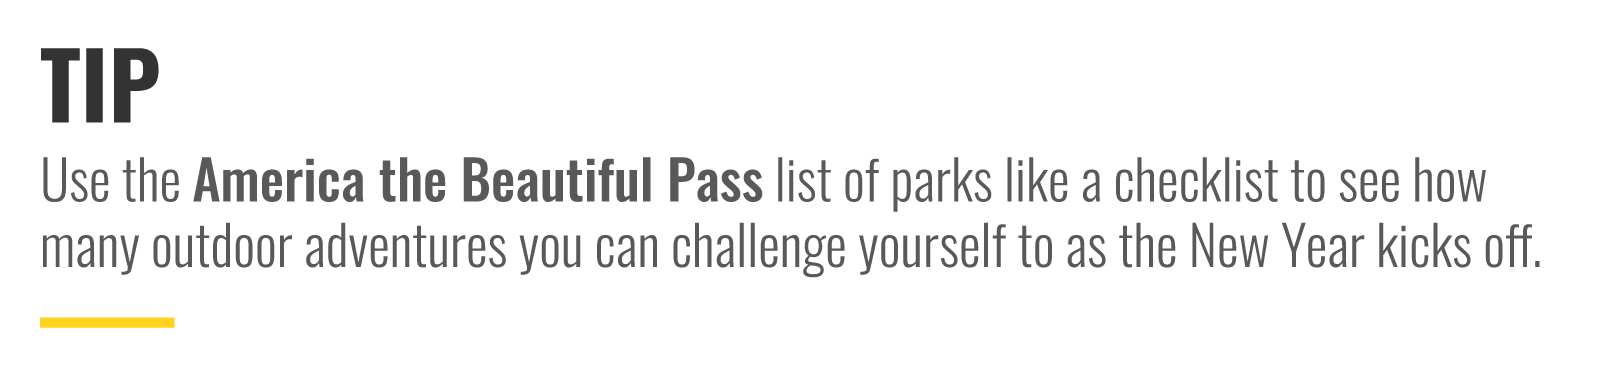 Use the America the Beautiful Pass list of parks like a checklist to see how many outdoor adventures you can challenge yourself to as the New Year kicks off.